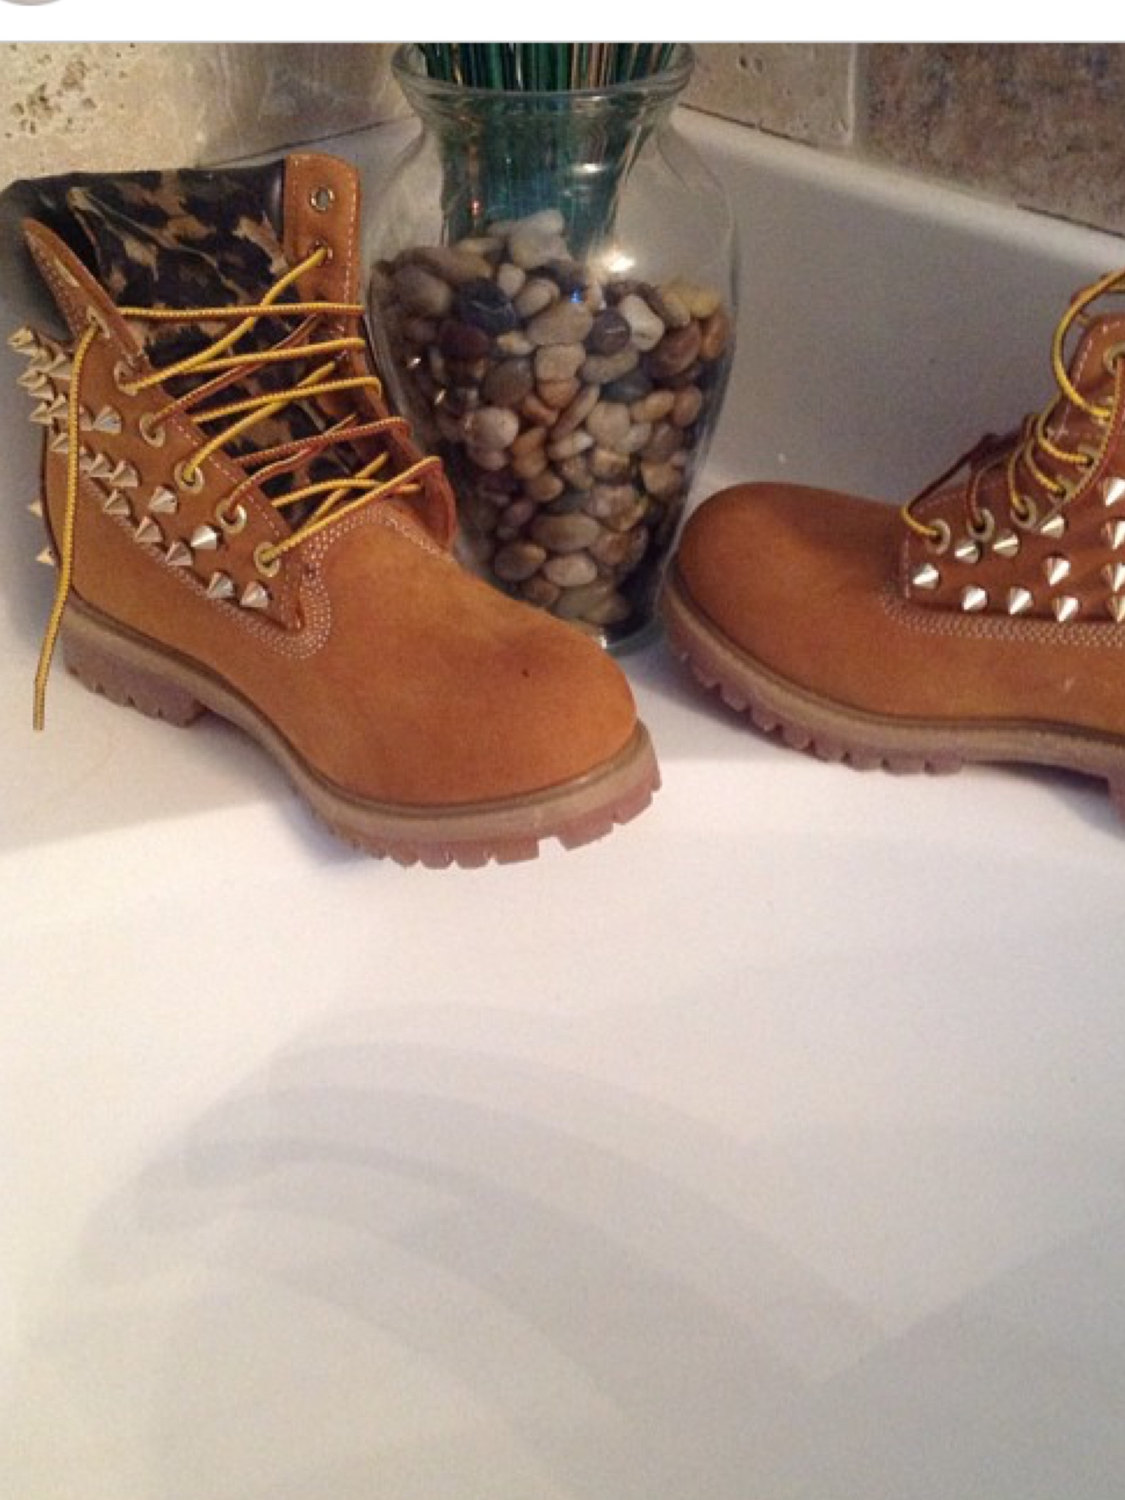 Adult custom timberland boots